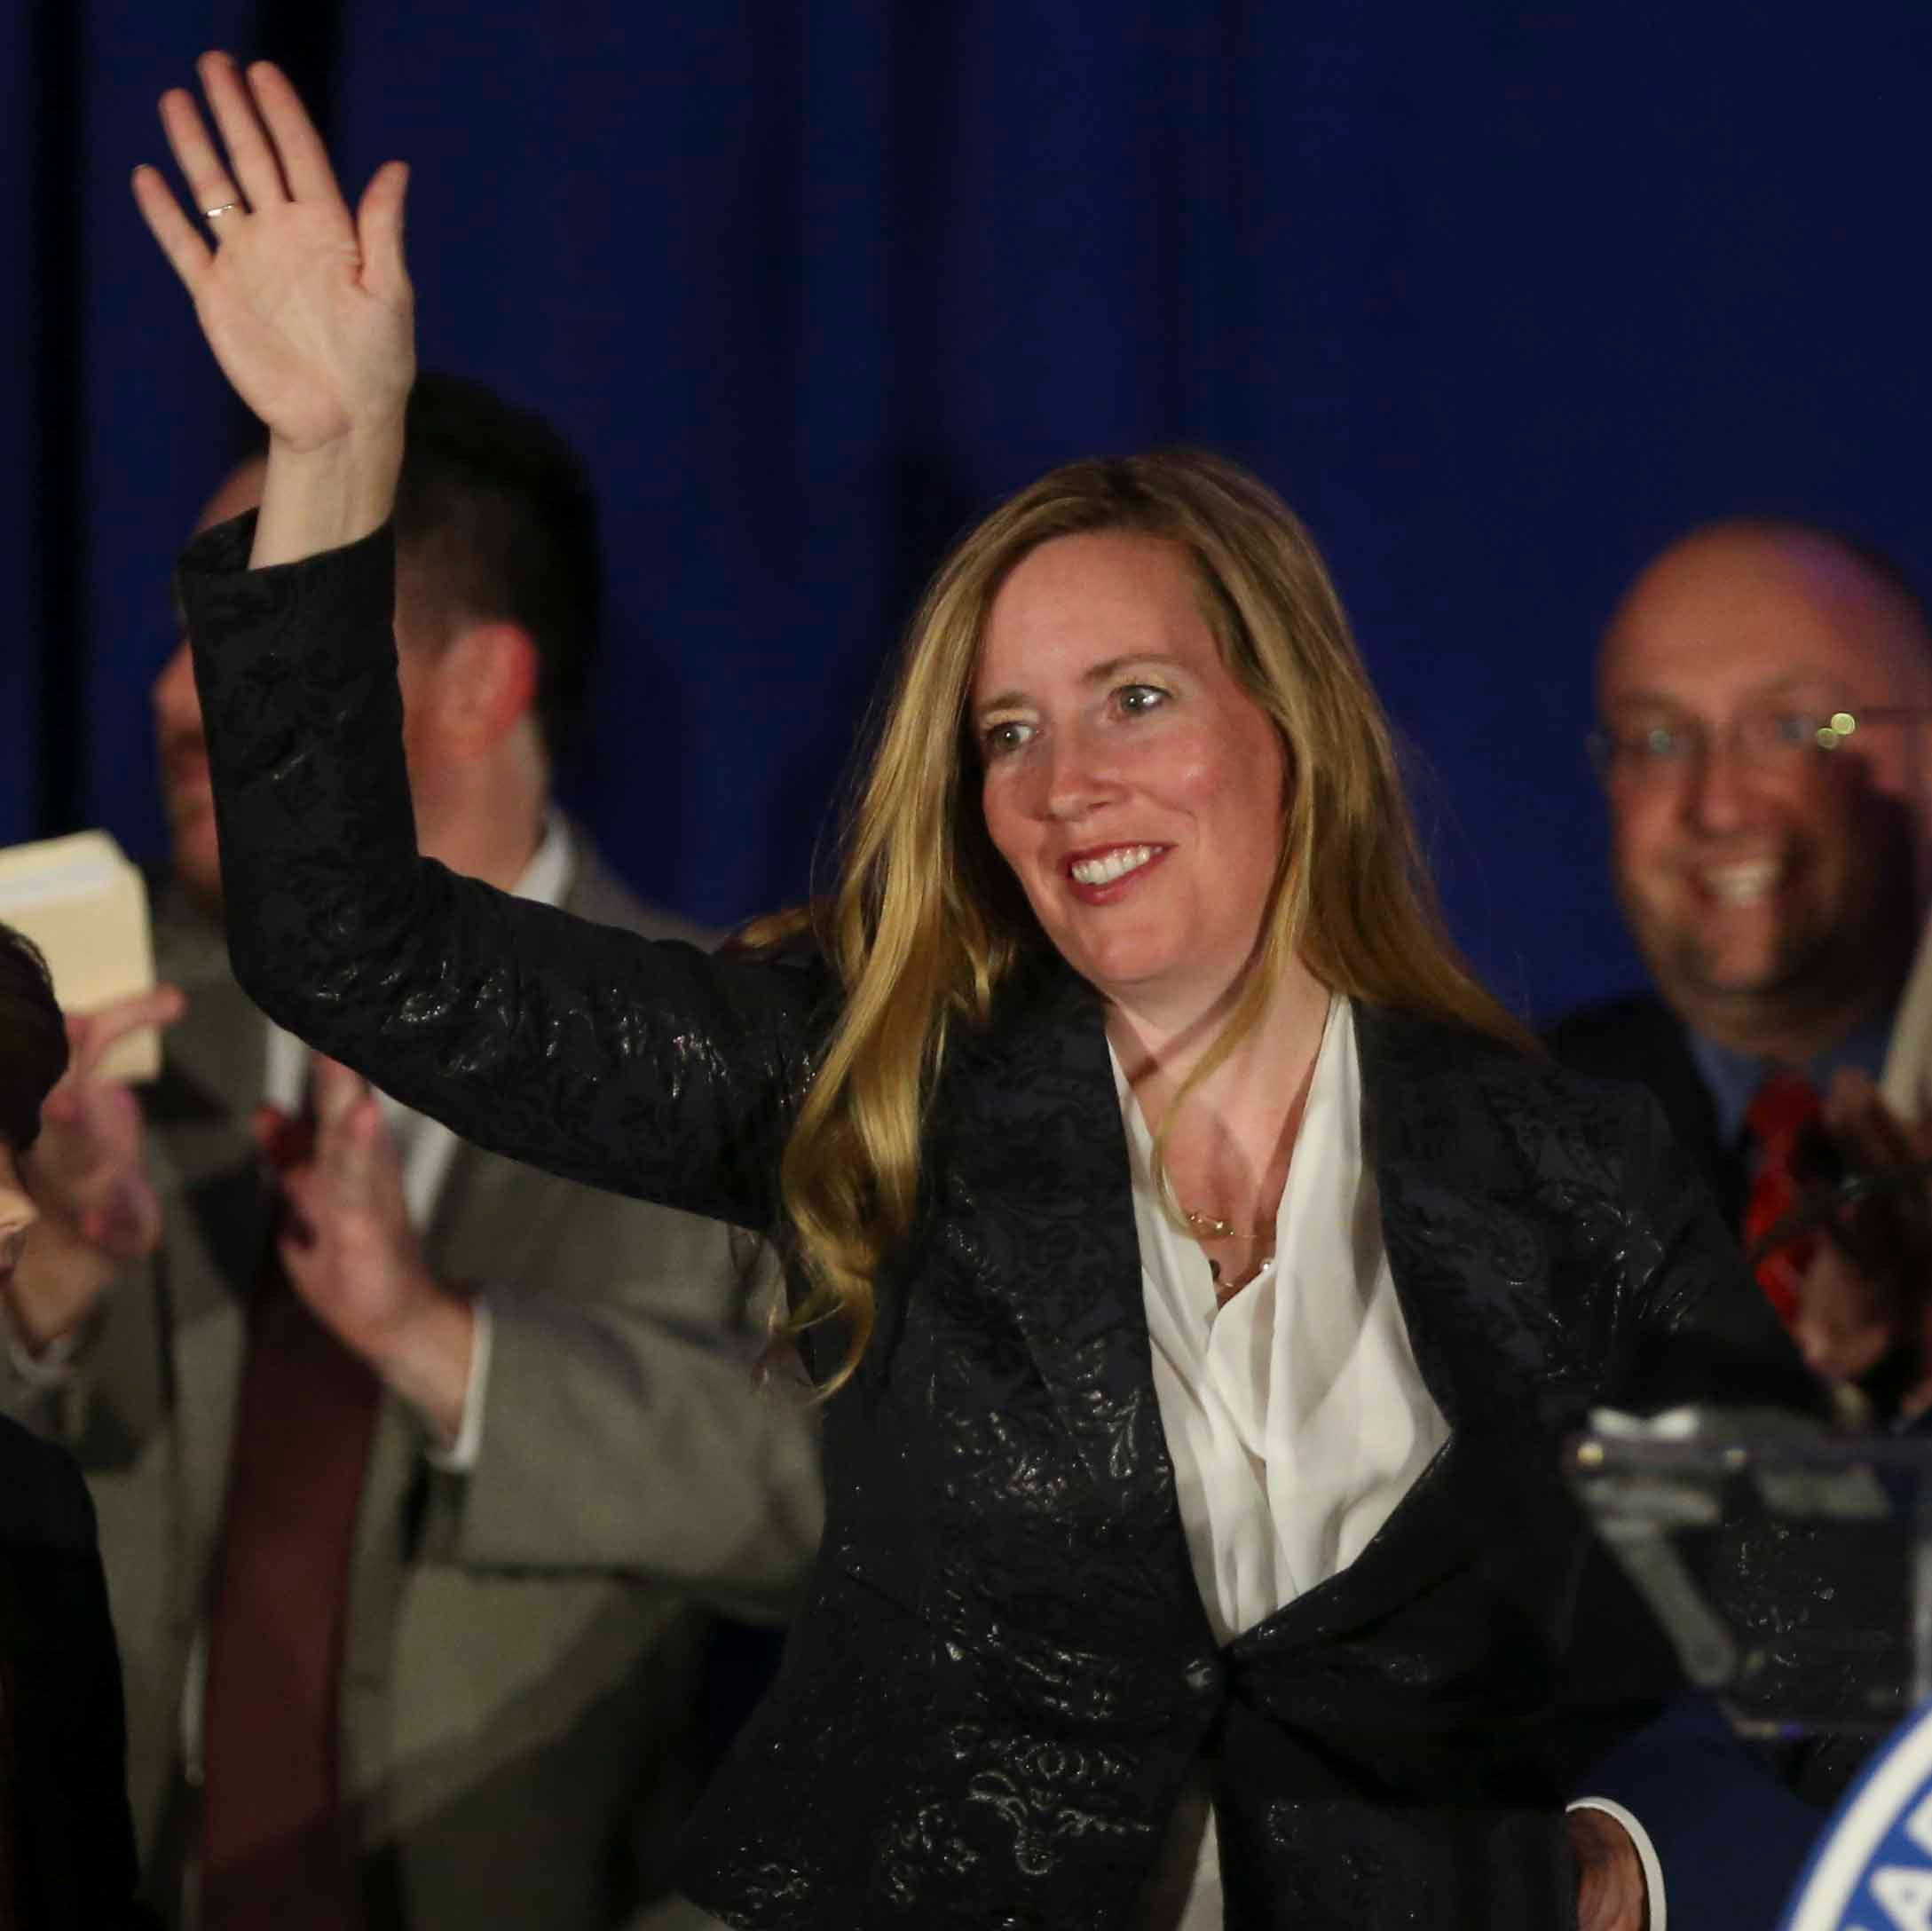 Delaware treasurer-elect Colleen Davis to plead guilty after traffic stop